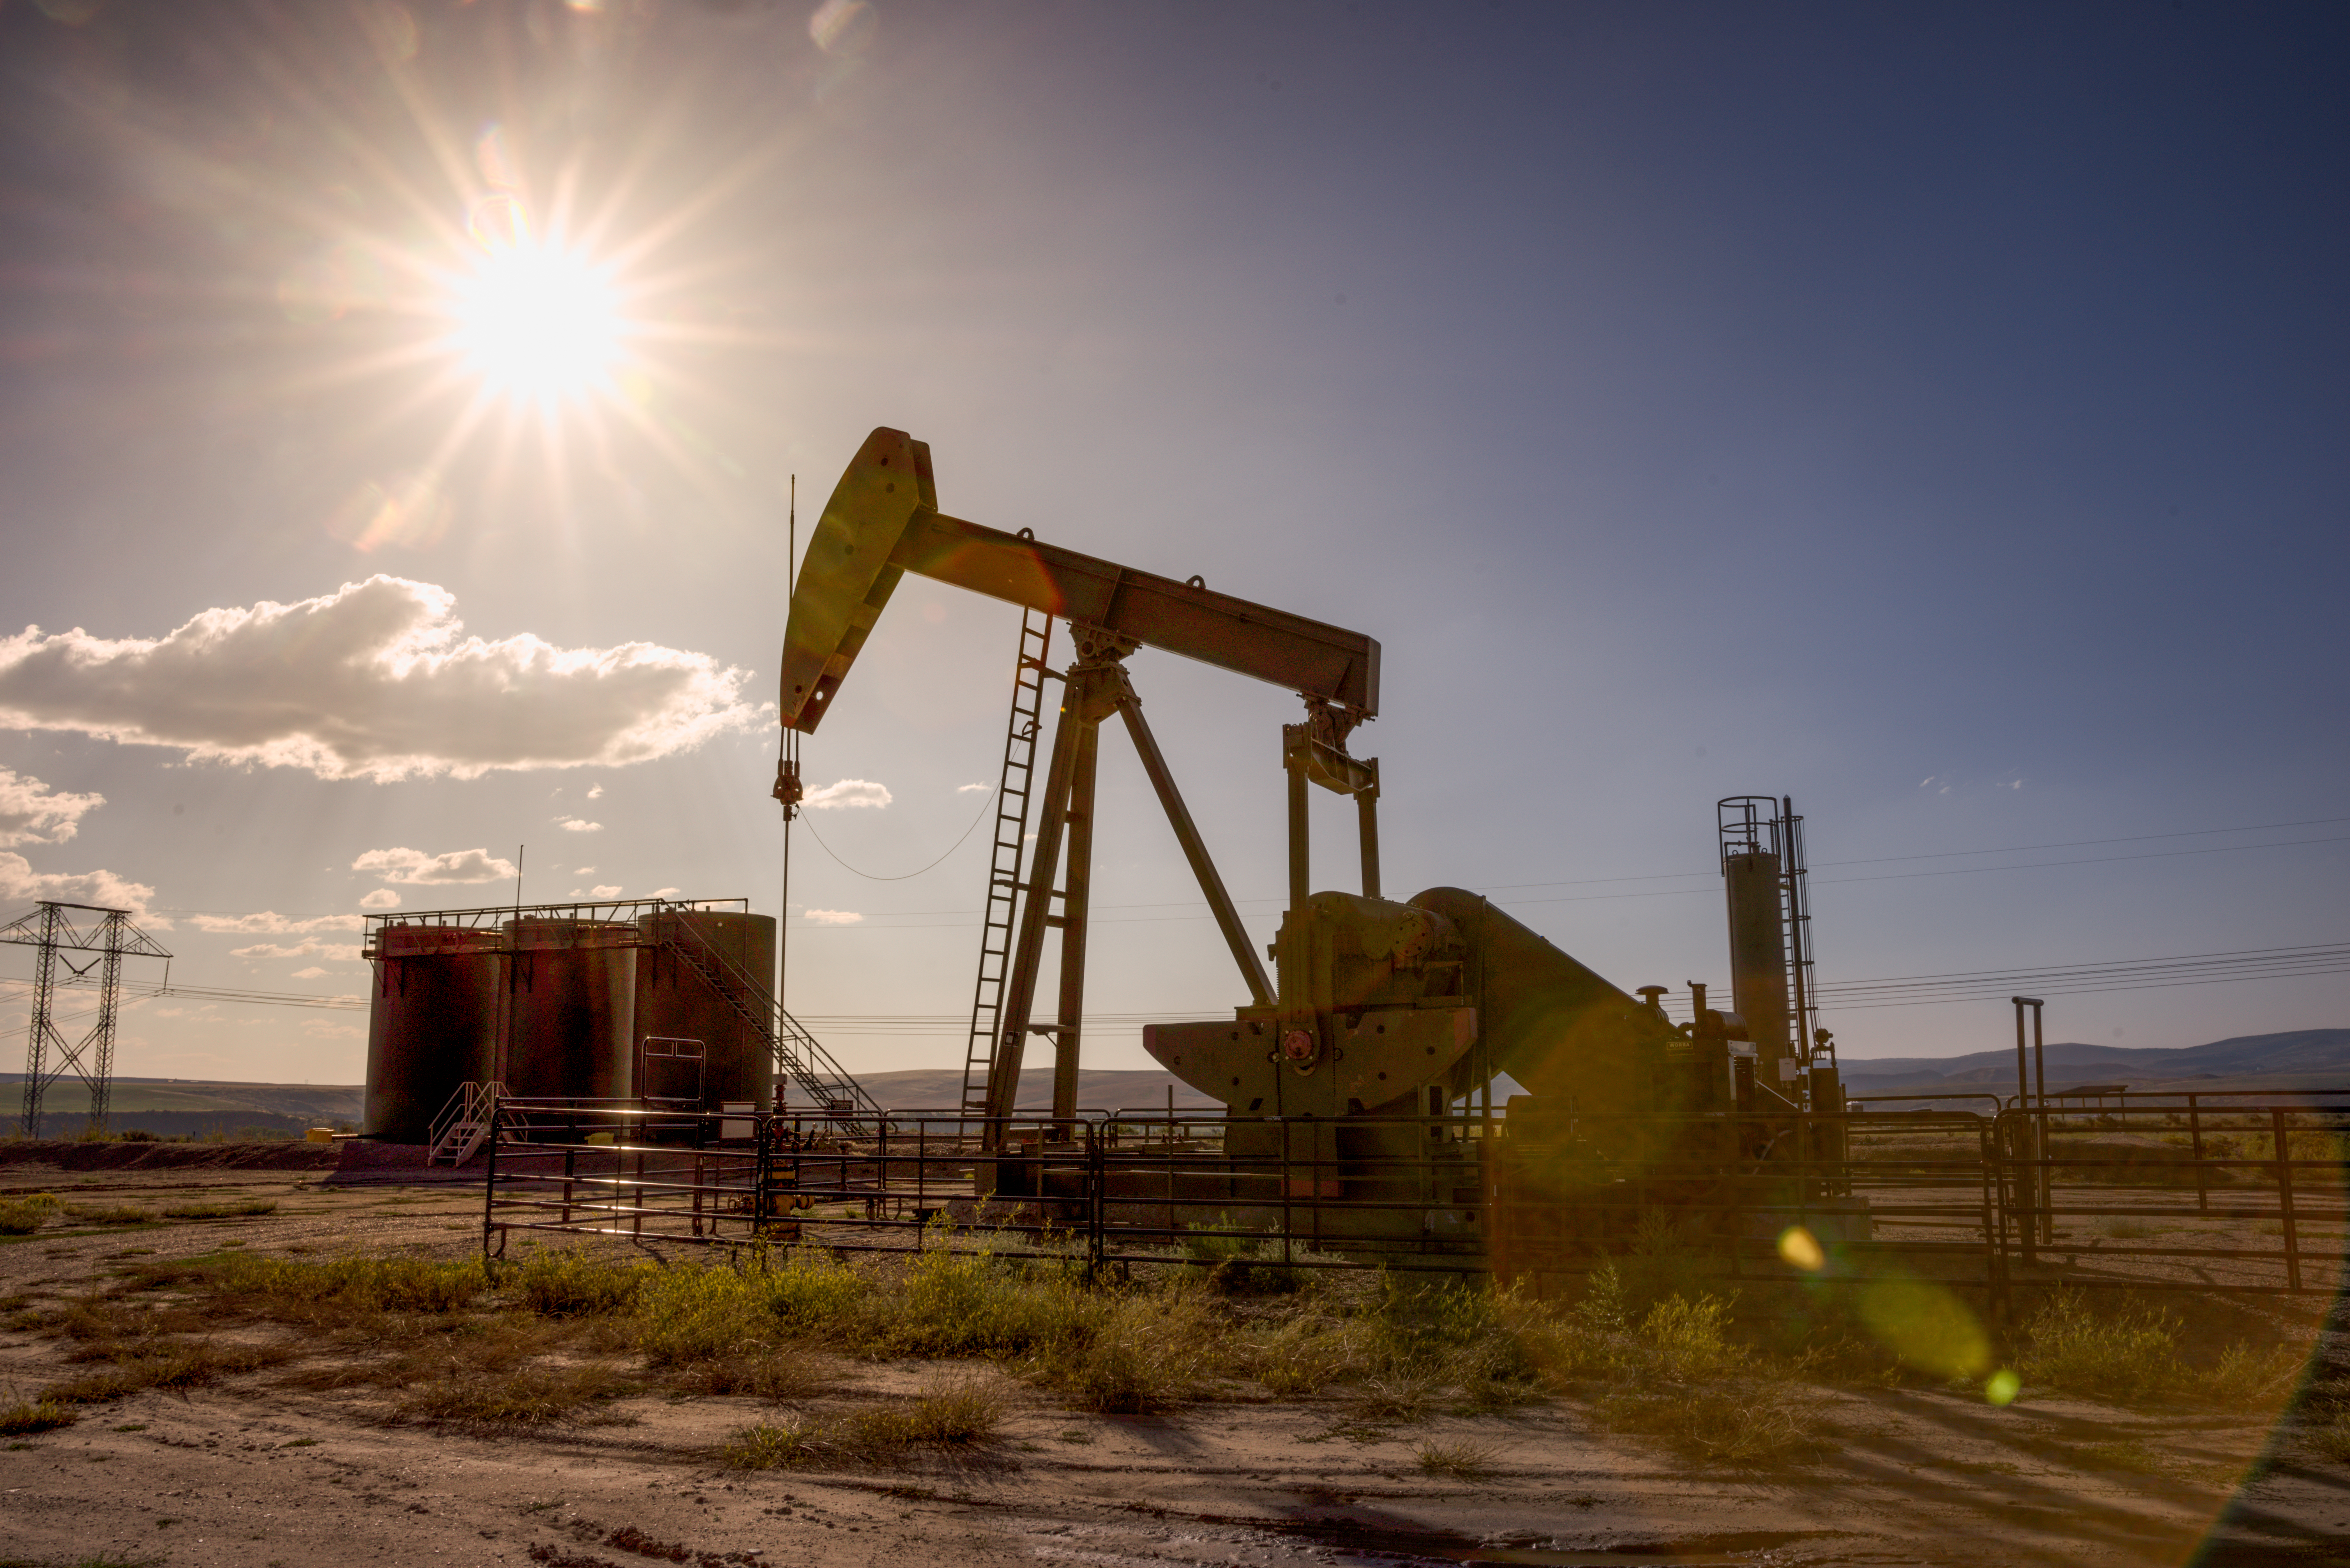 KW Producing Oil And Gas In The Colorado Desert